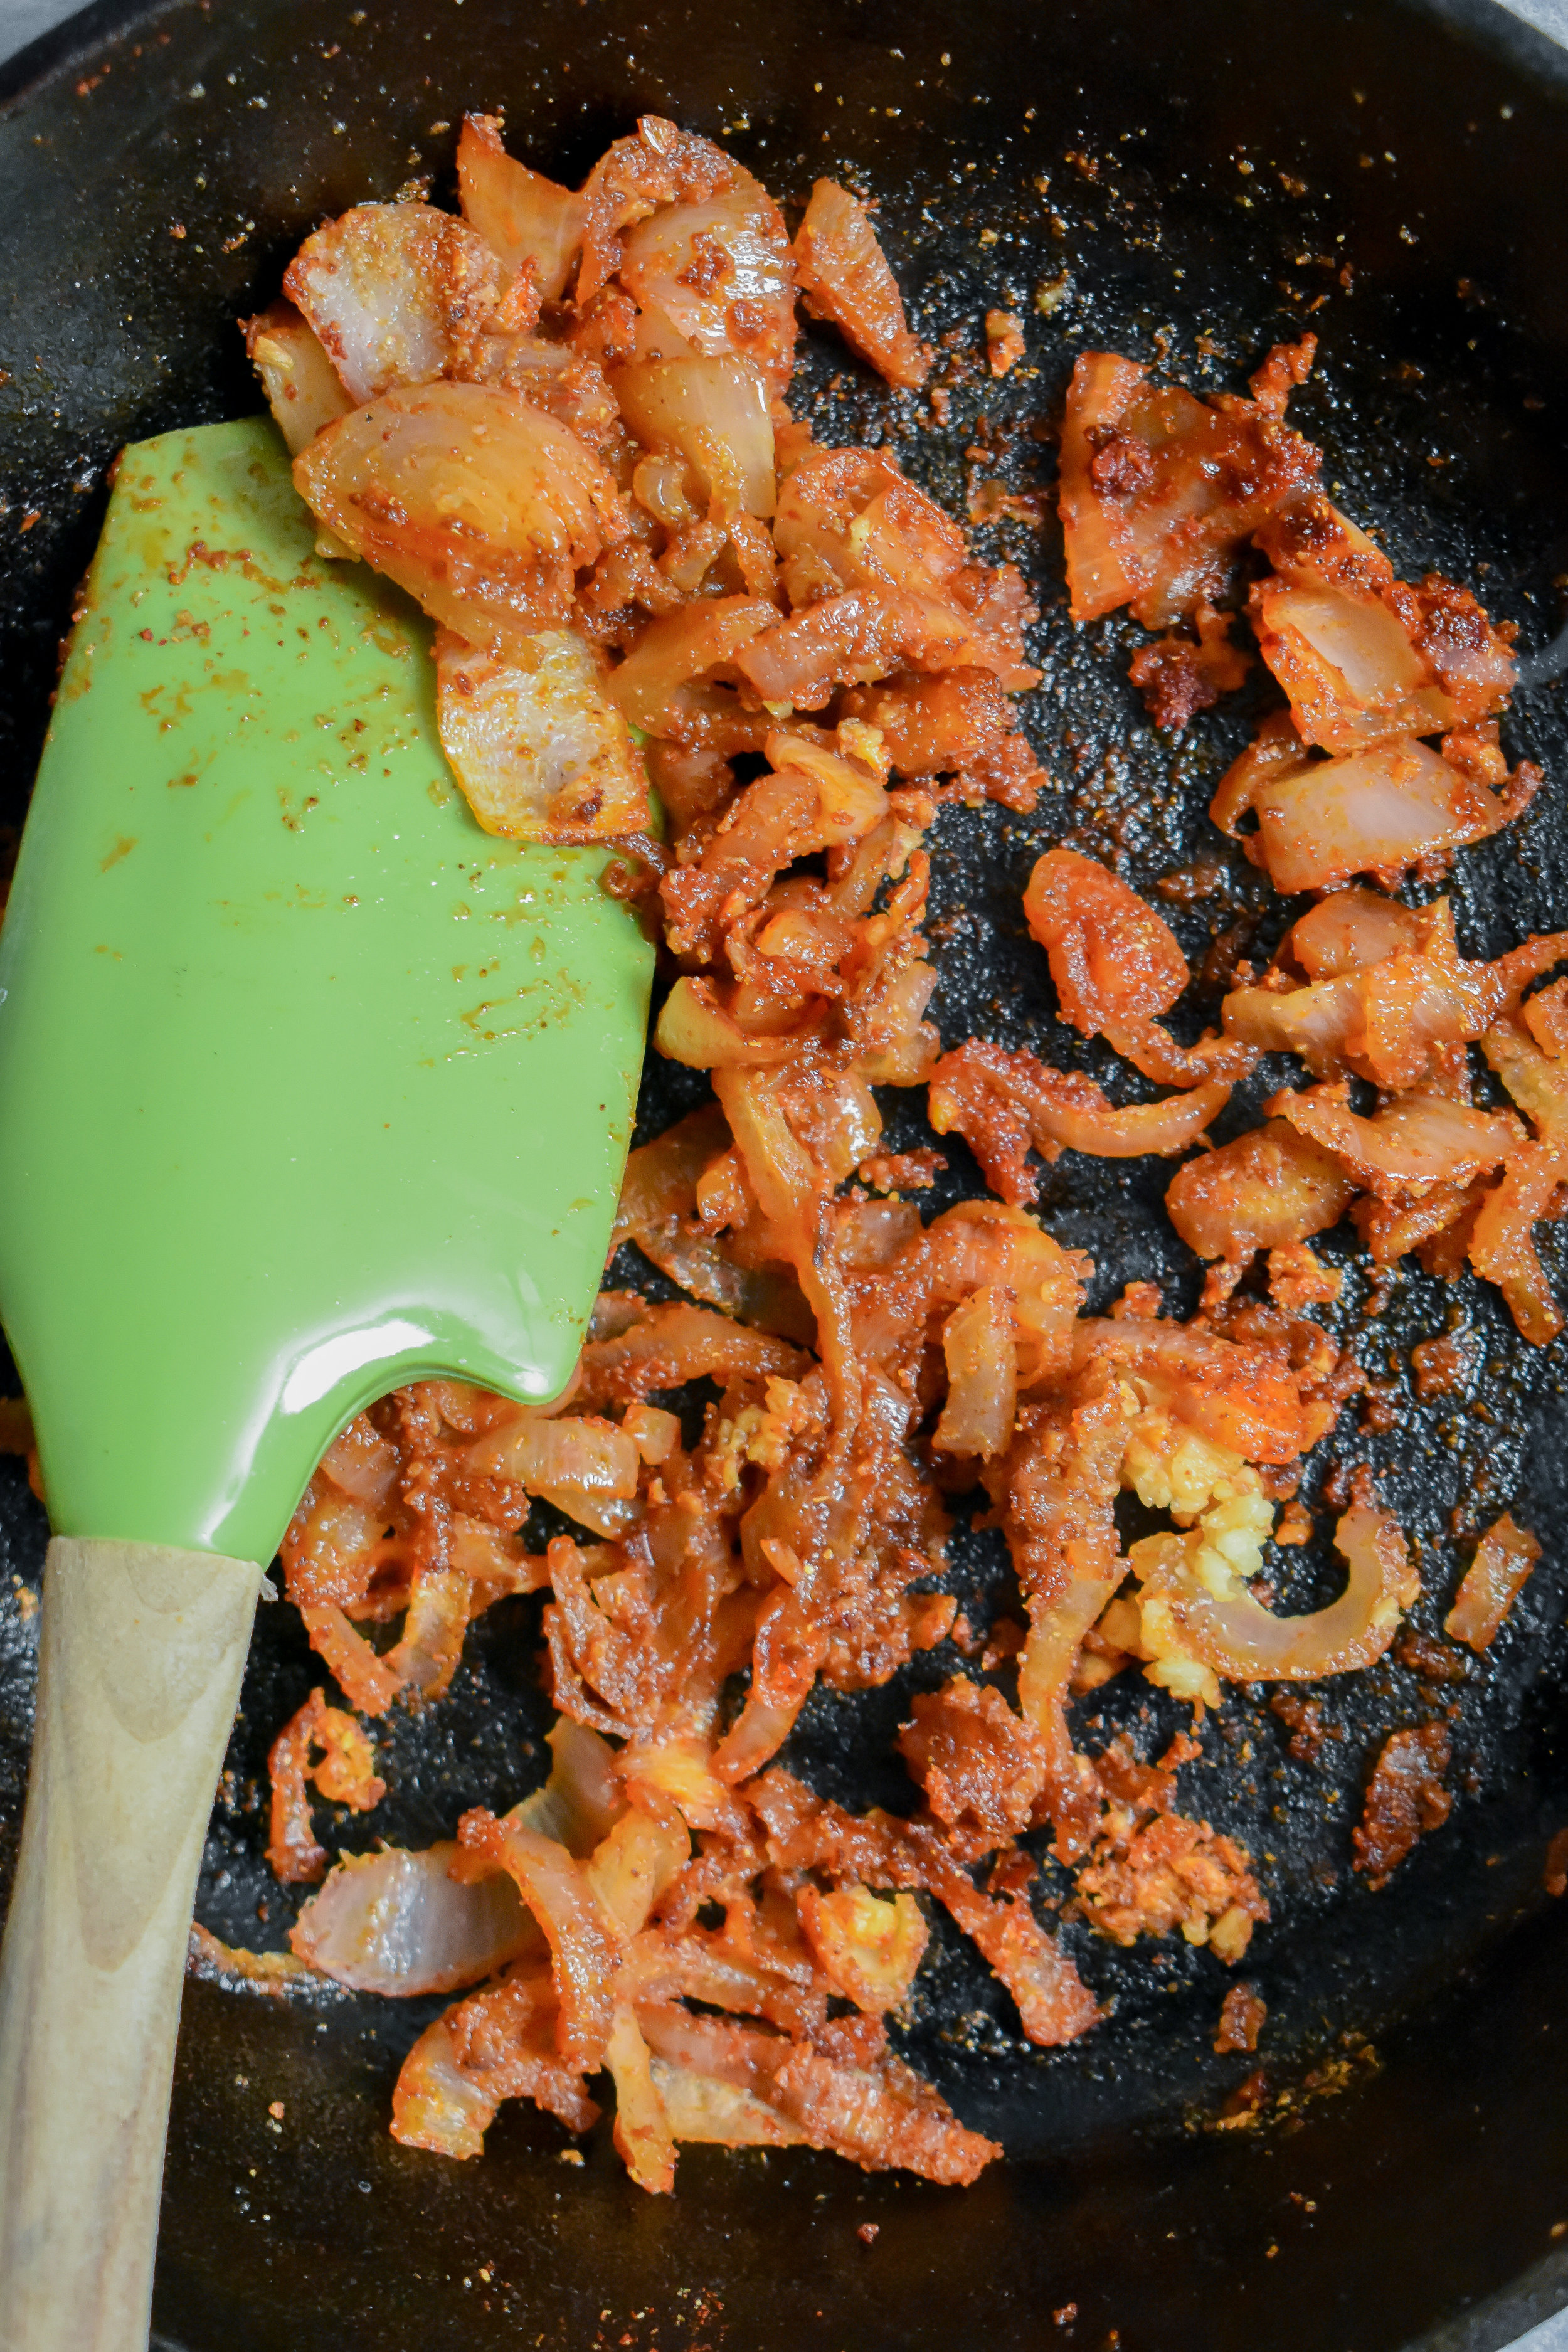 2. Next, add oil to a small castiron pan and warm over medium heat for 60 seconds. Add shallot and garlic to pan and cook for 4 minutes. Add spices and continue cooking for 2 minutes. Remove from heat and set side.